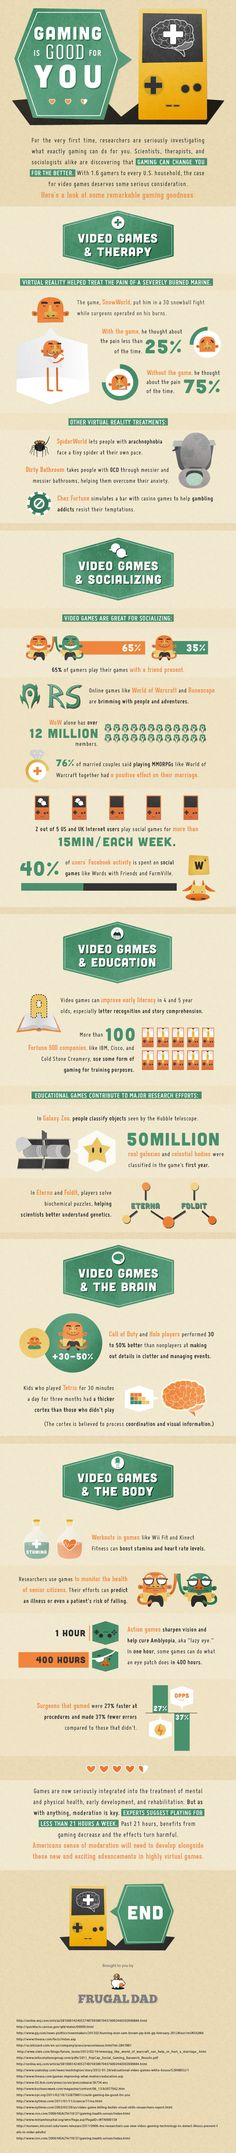 Gaming is Good for You Infographic #gbl #edtech #edtechchat #elearning #classtech #educators #gamification #edchat #Infographic